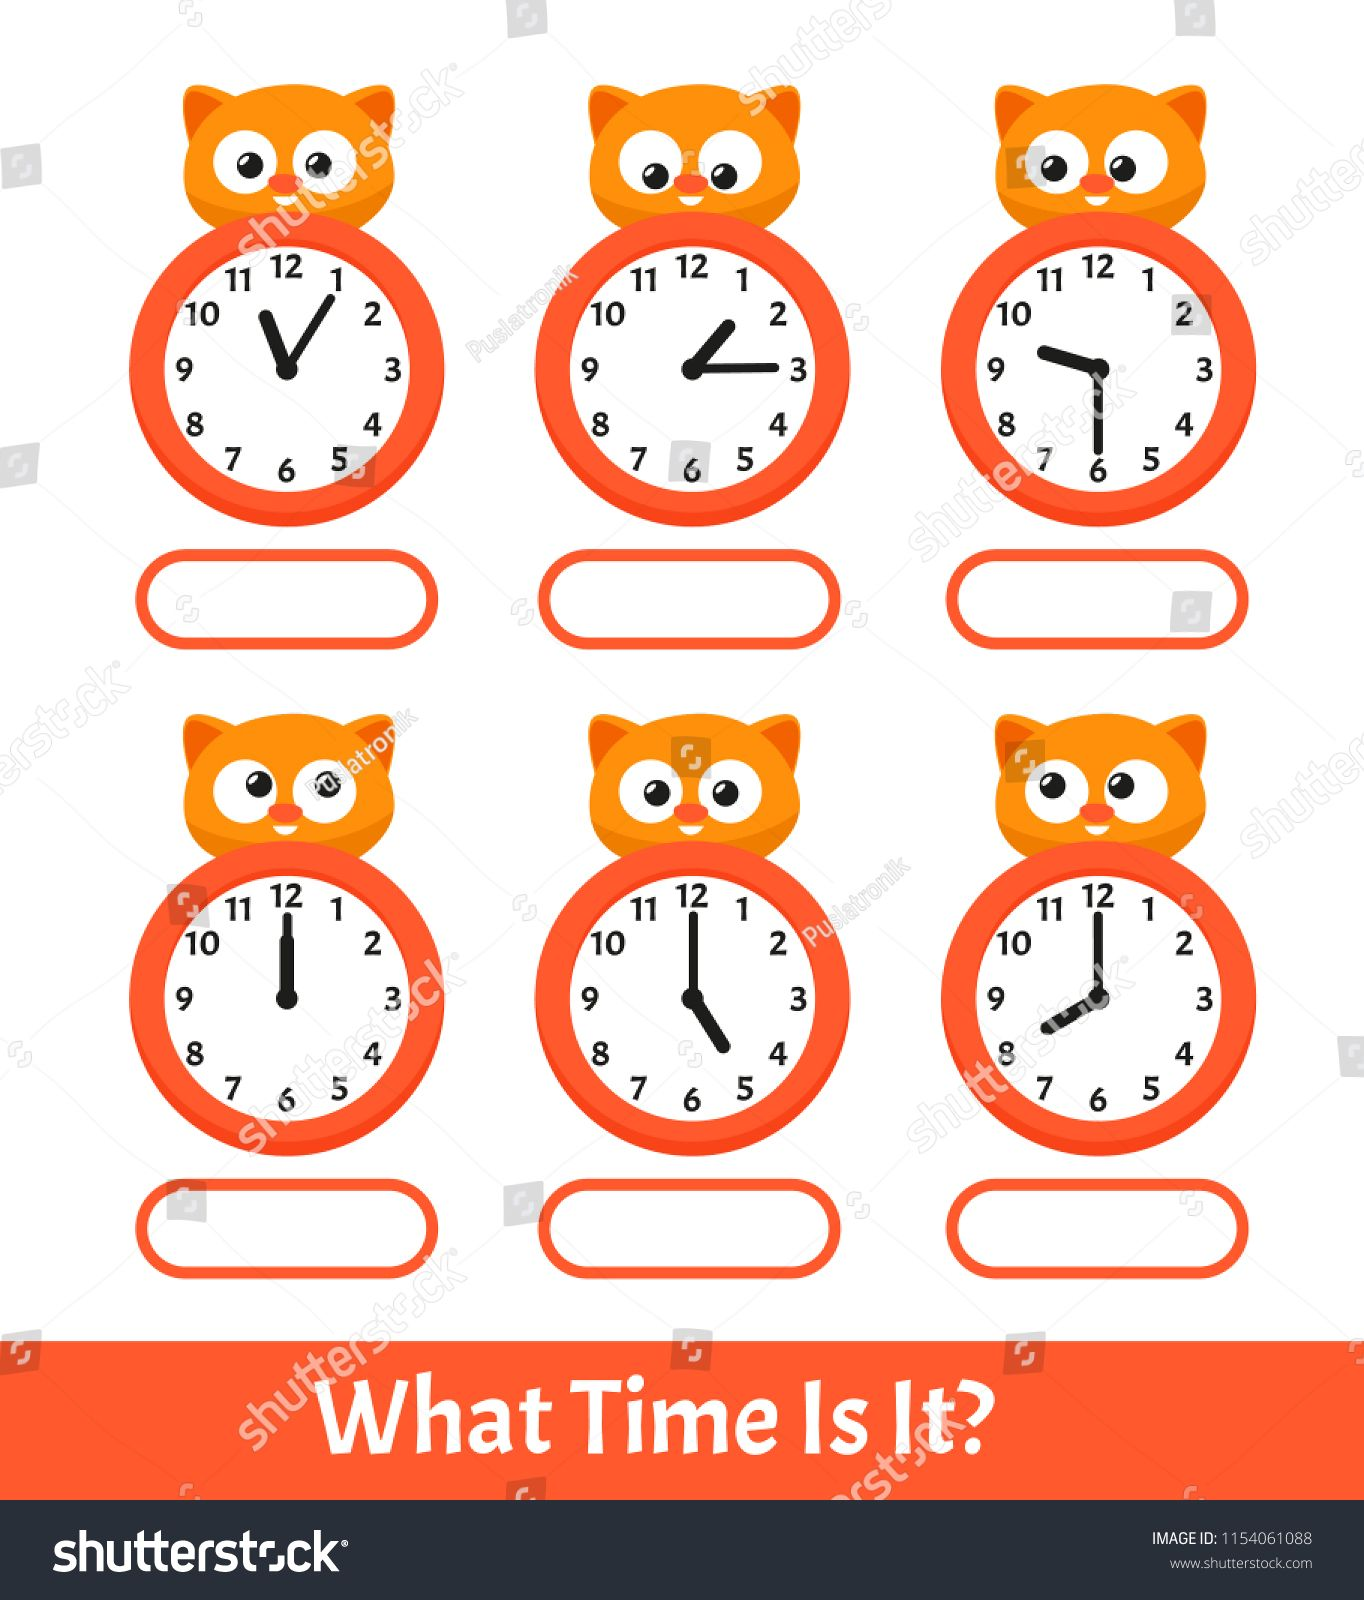 Kids Learning Exercises What Time Is It Education